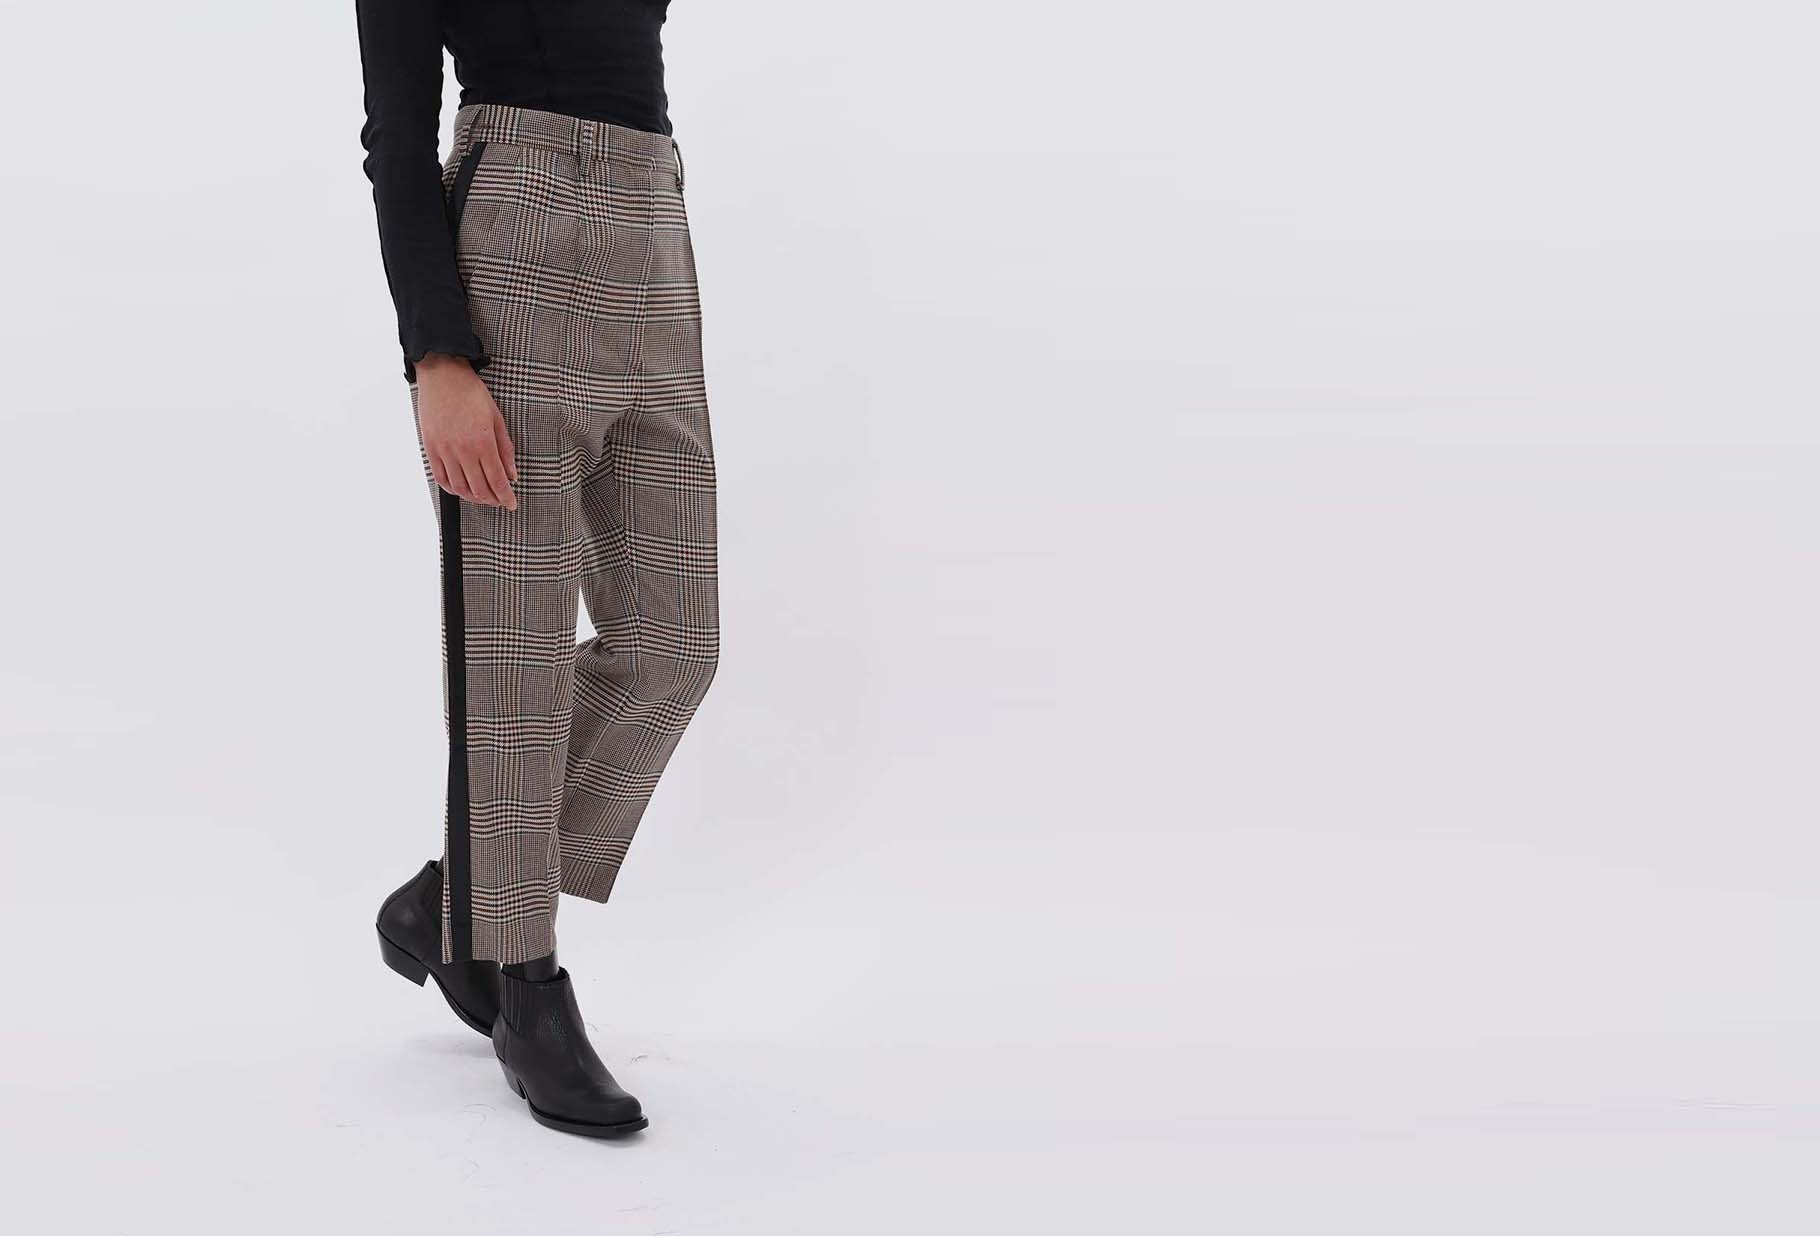 MM6 MAISON MARGIELA / Belted check trousers Beige